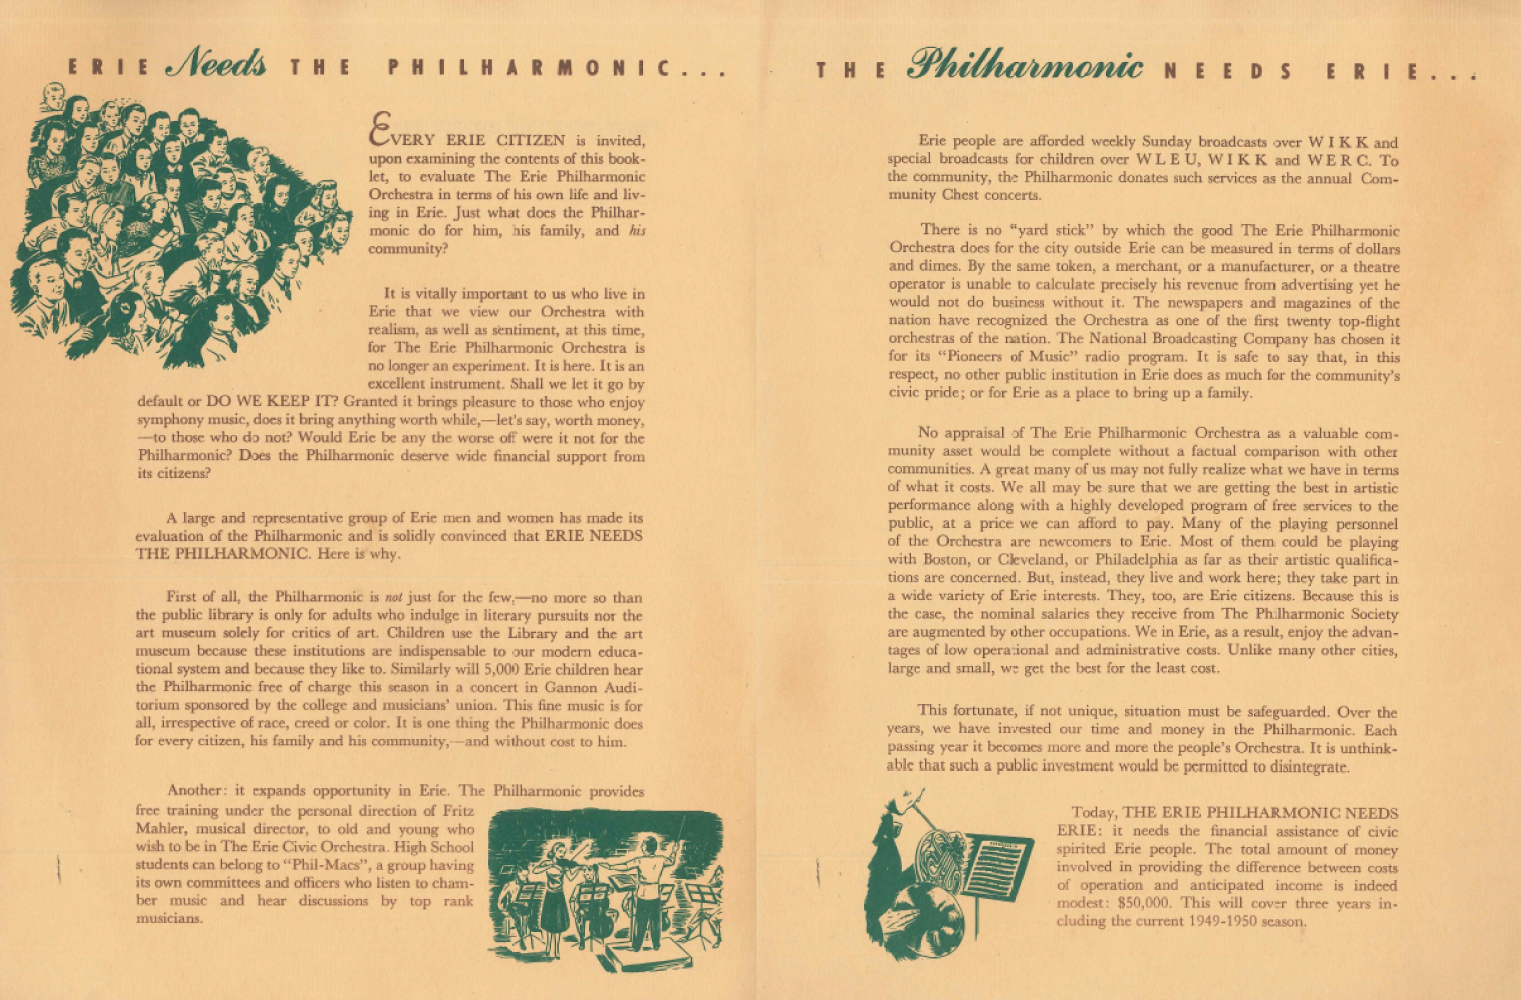 An Annual Report from 1949